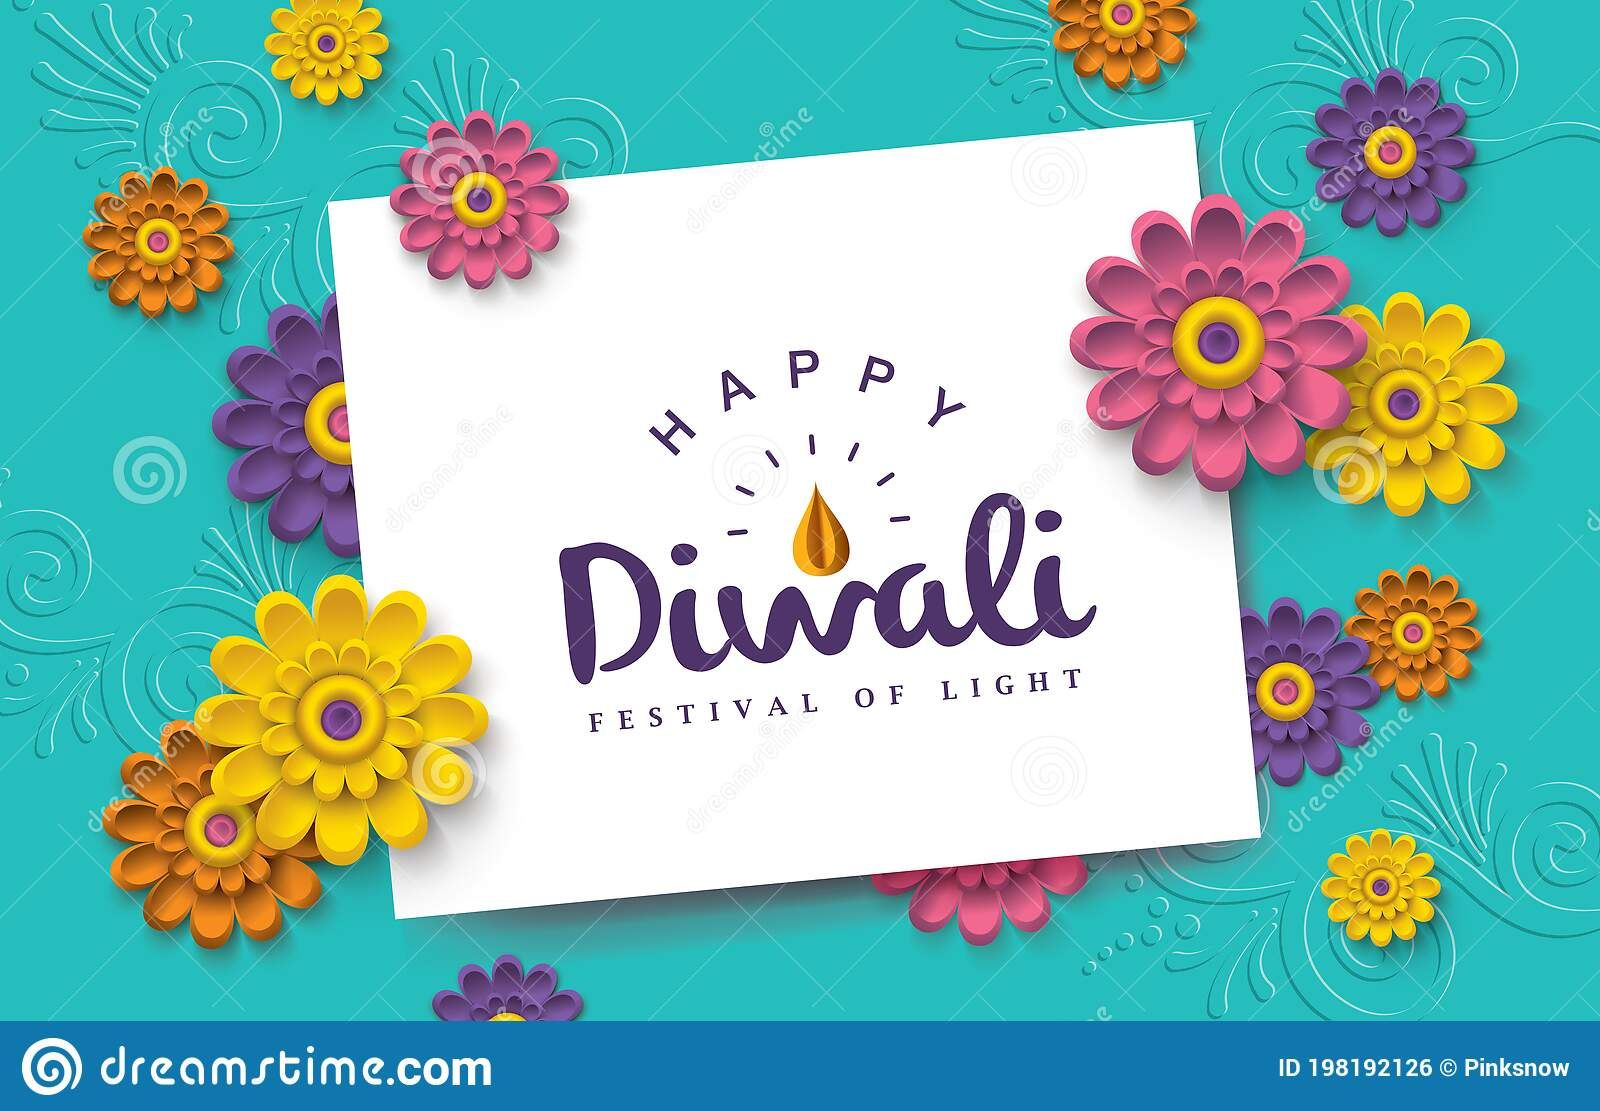 Happy Diwali Diwali Greeting Card With Beautiful Flowers And Space For Your Tex Sponsored Diwali Gre In 2021 Diwali Greeting Cards Diwali Greetings Happy Diwali